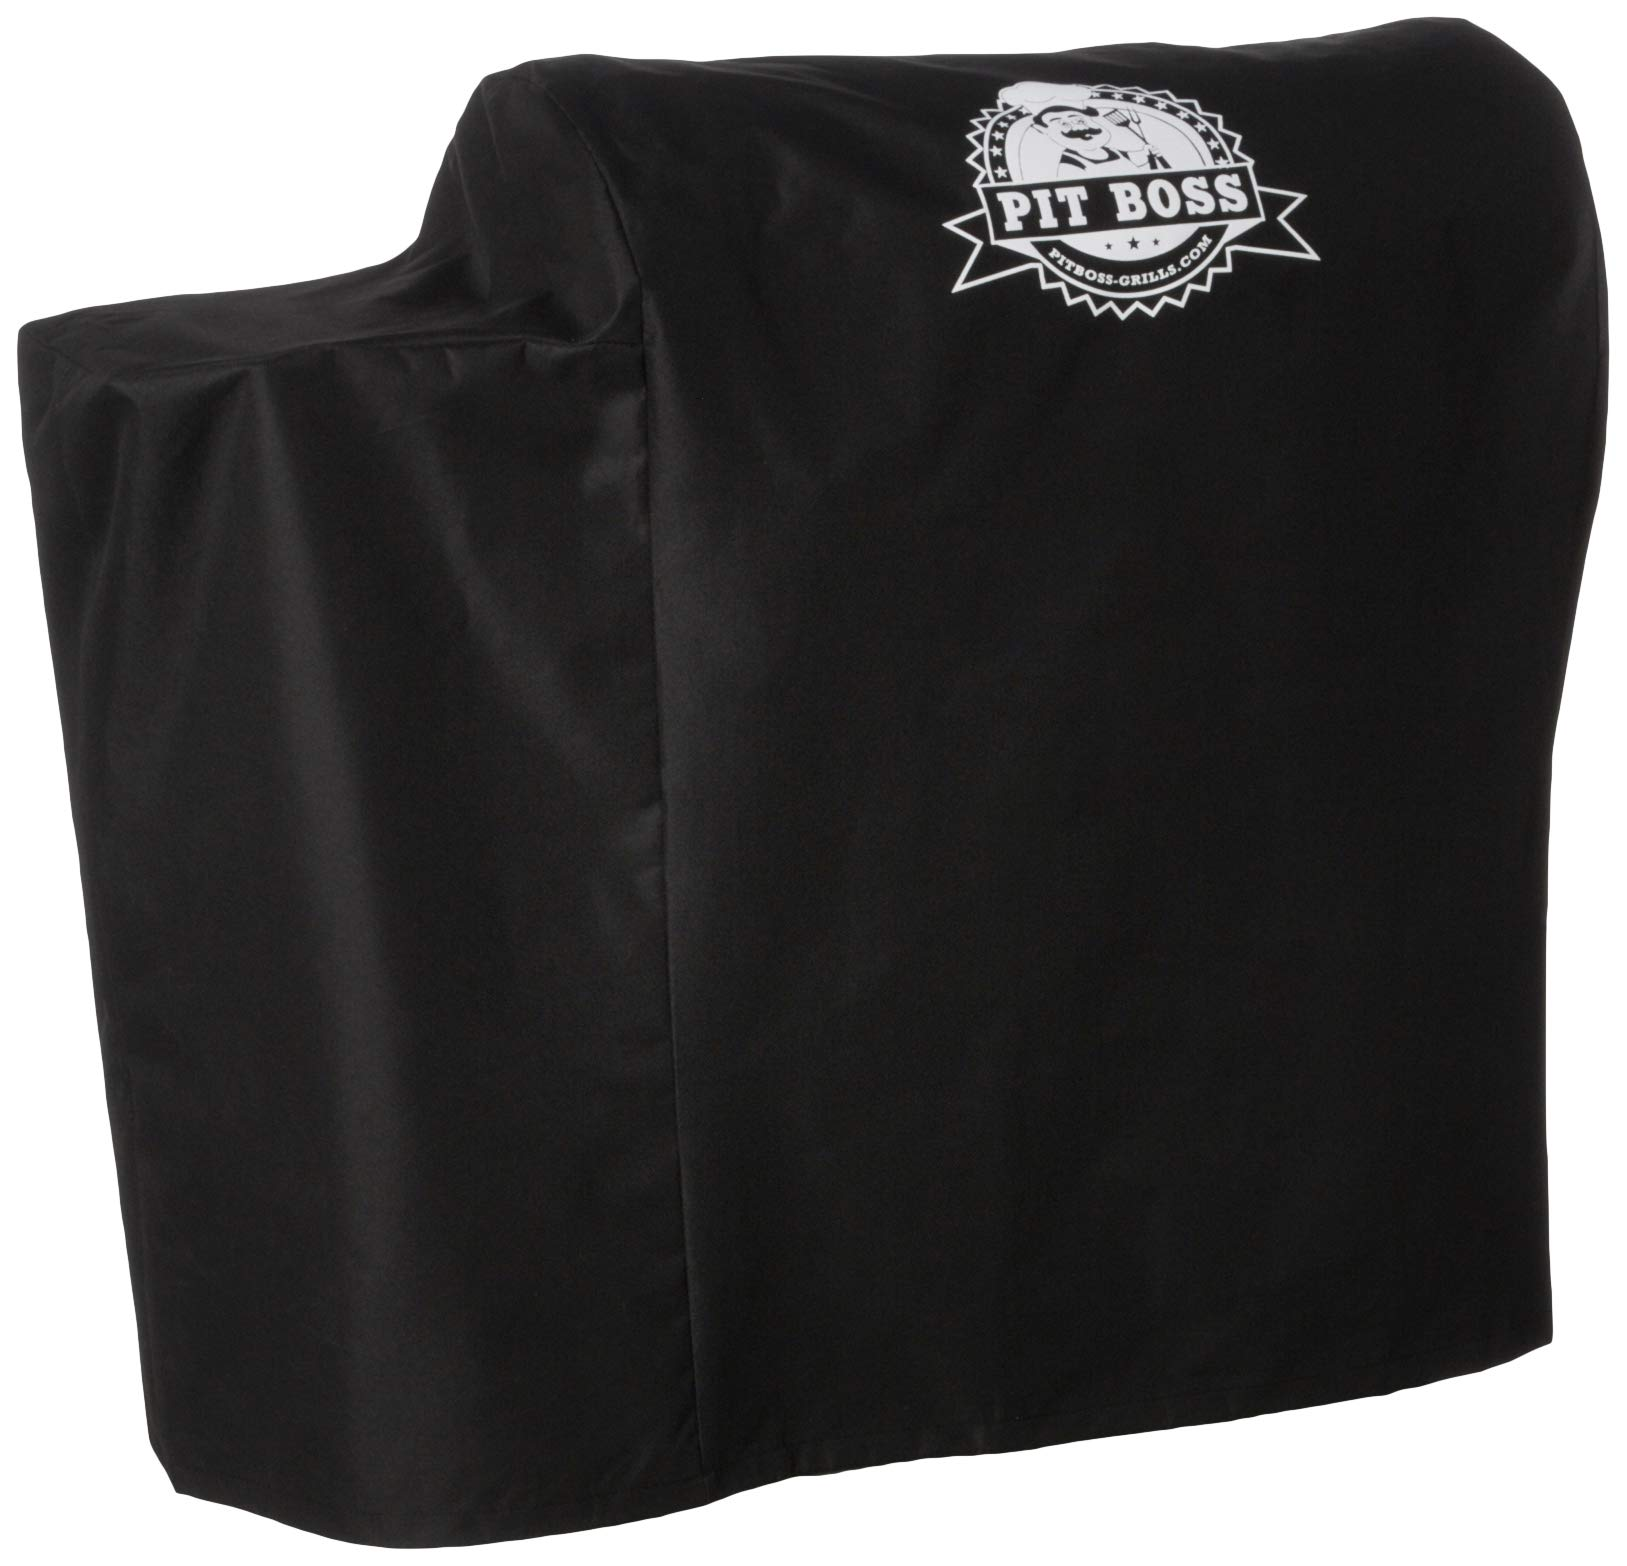 Pit Boss 73340 Grill Cover for Wood Pellet Grills by Pit Boss Grills